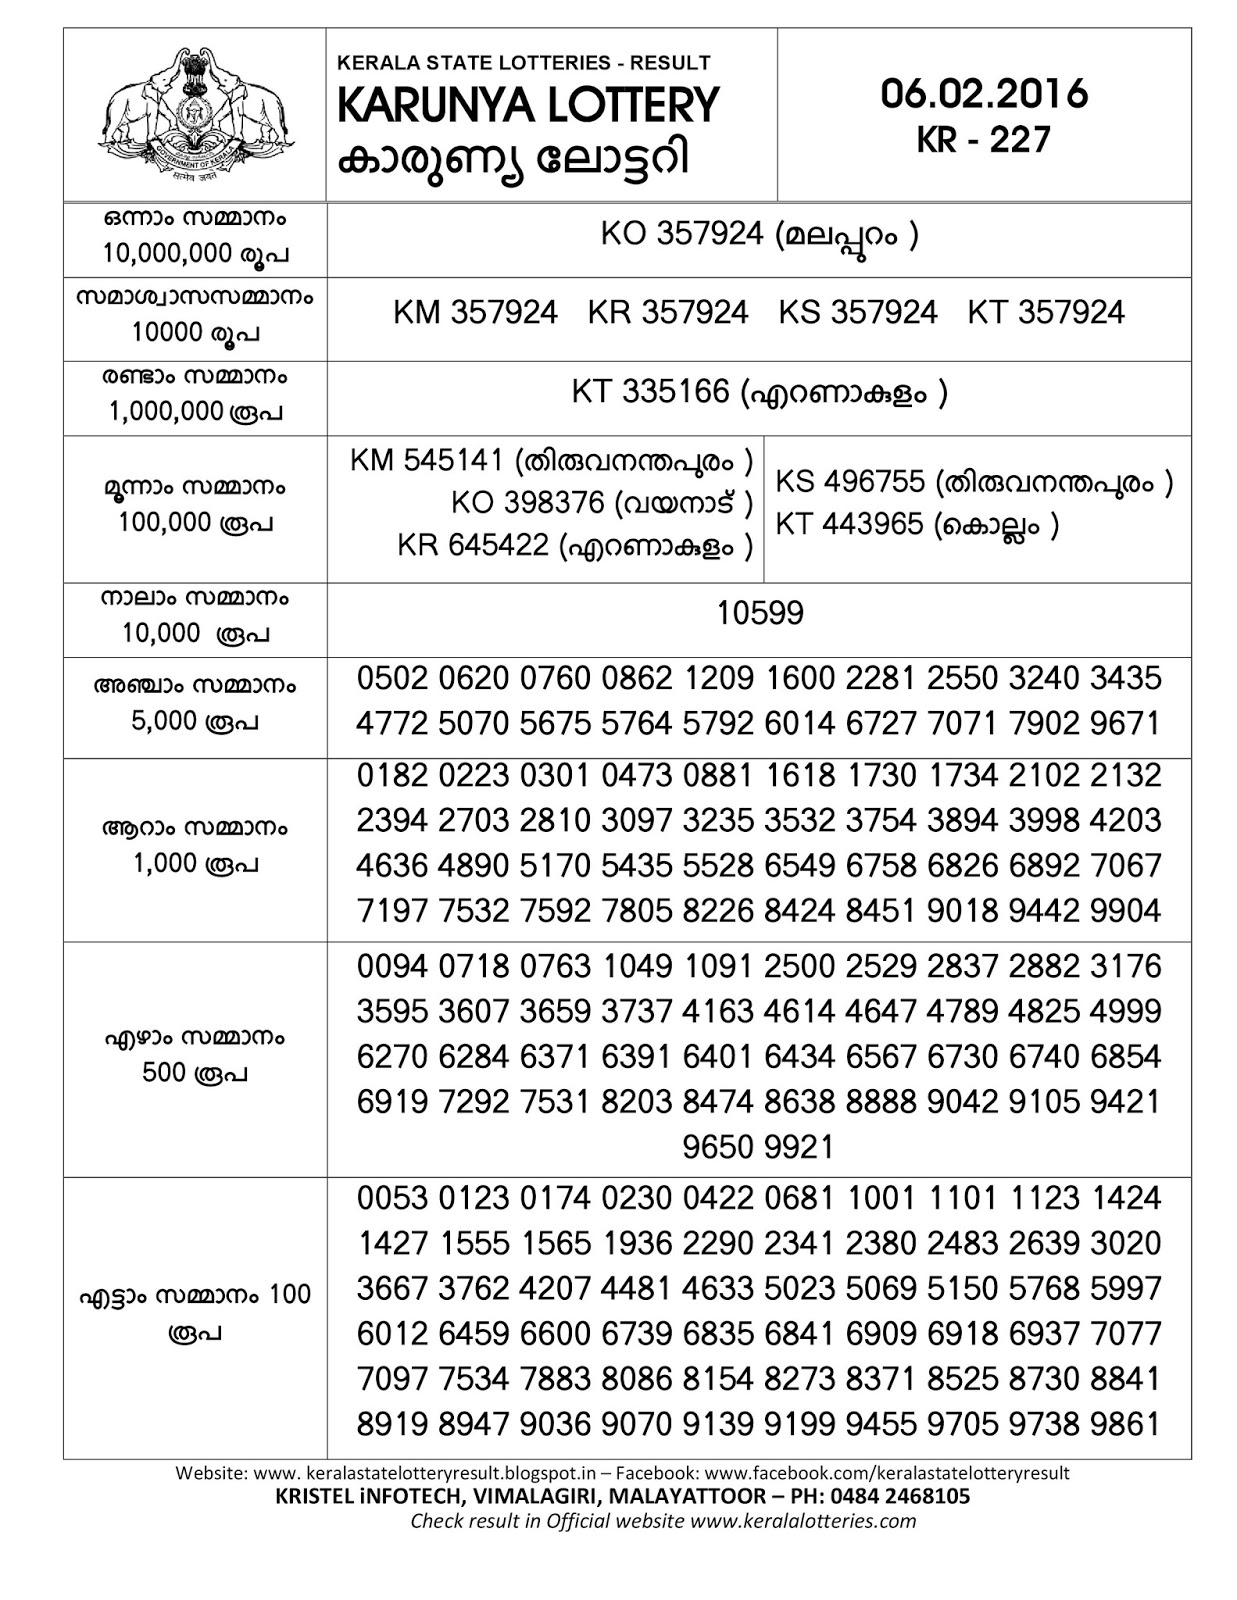 Kerala lottery results today malayalam